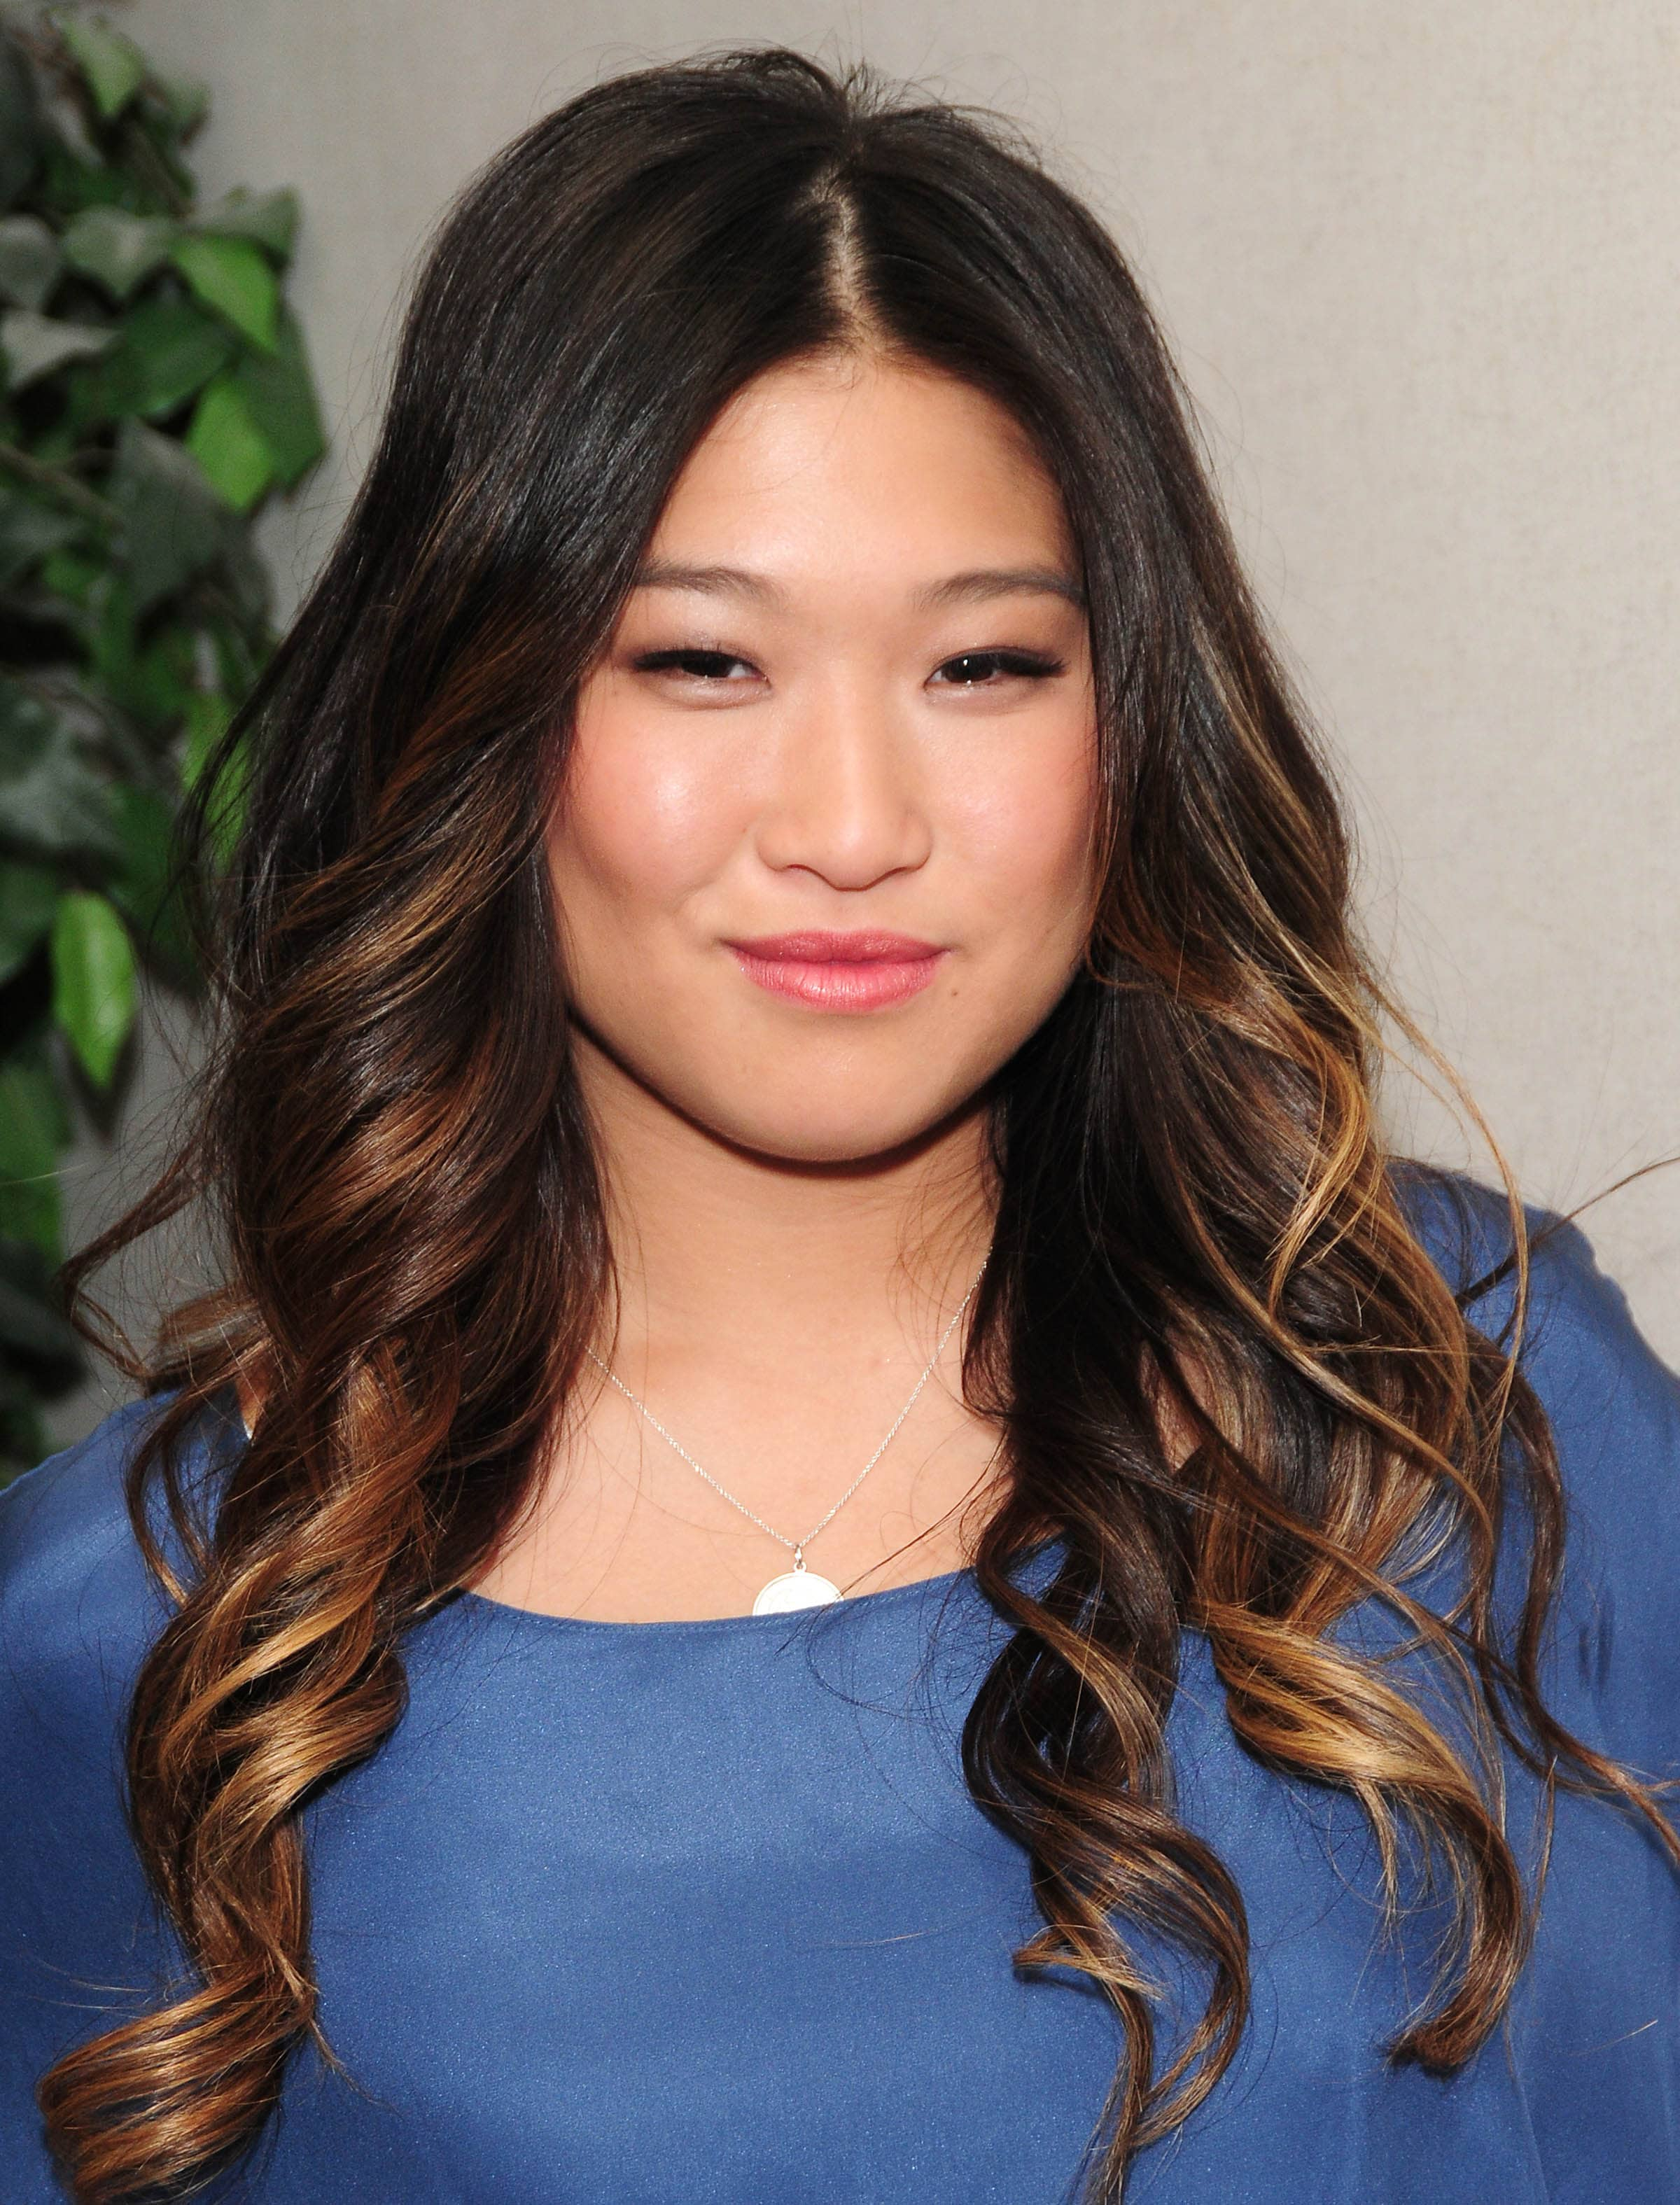 Brown hair with blonde highlights: Glee actress Jenna Ushkowitz with long curly brunette hair and peekaboo blonde highlights